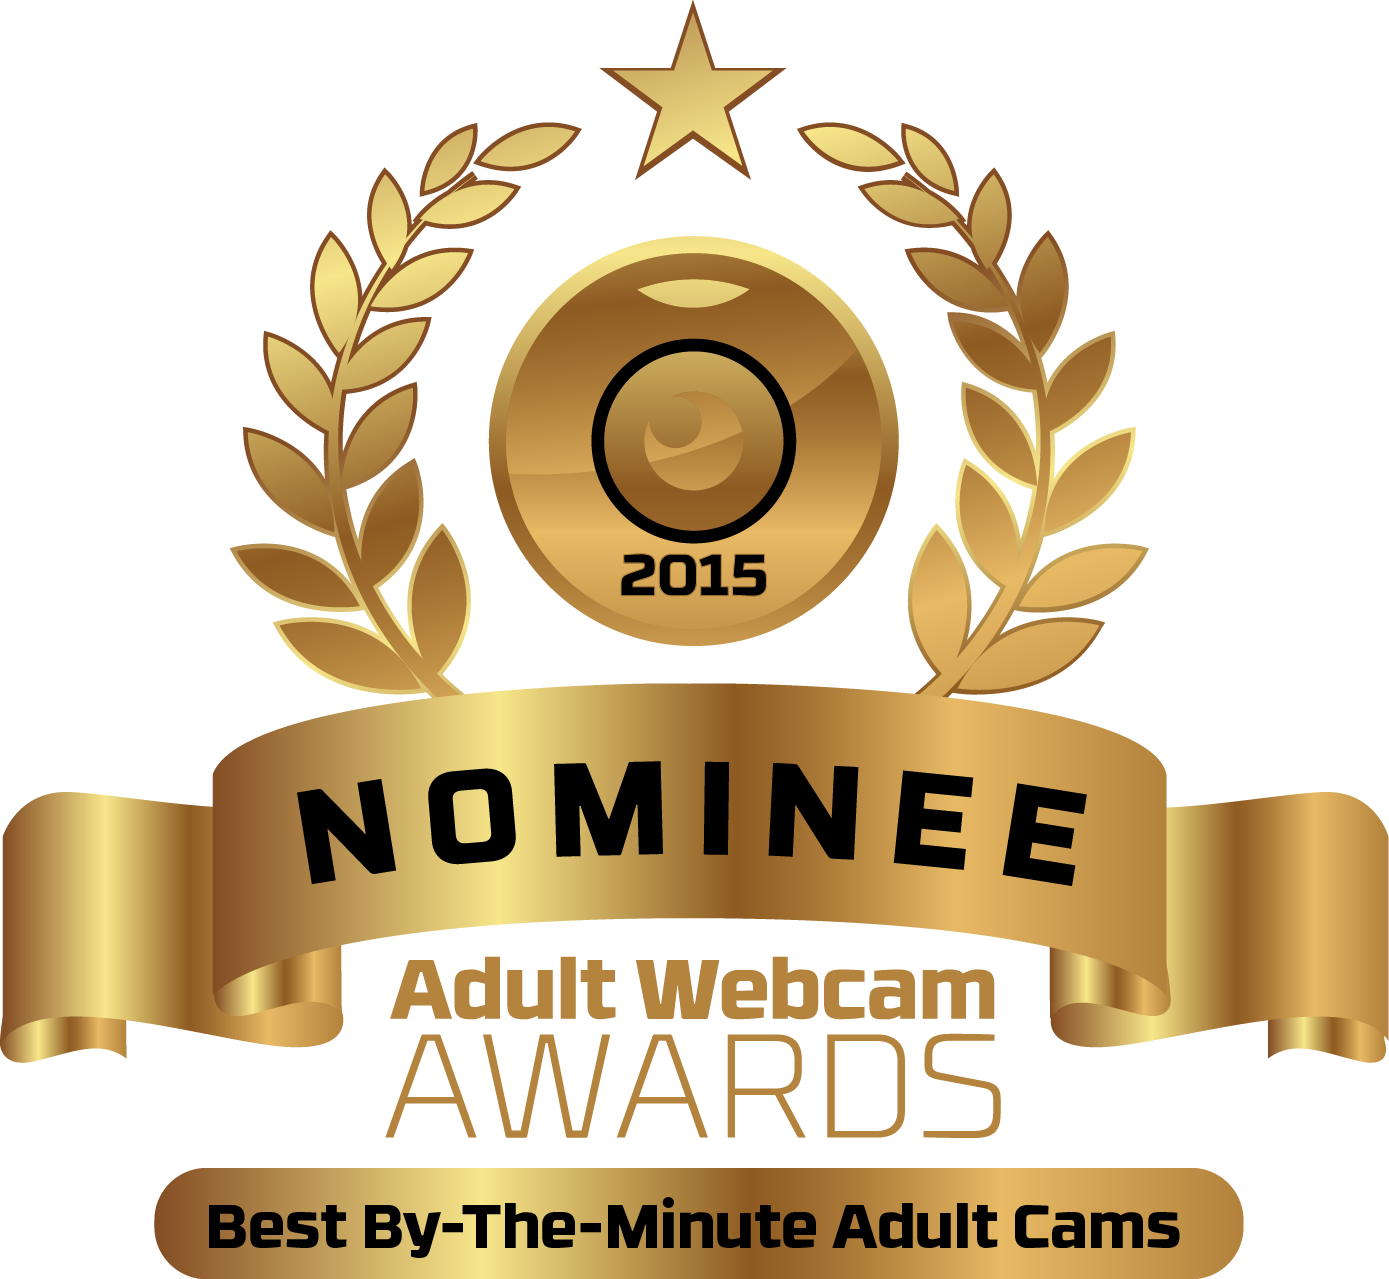 Best by the minute adult webcam site nominee